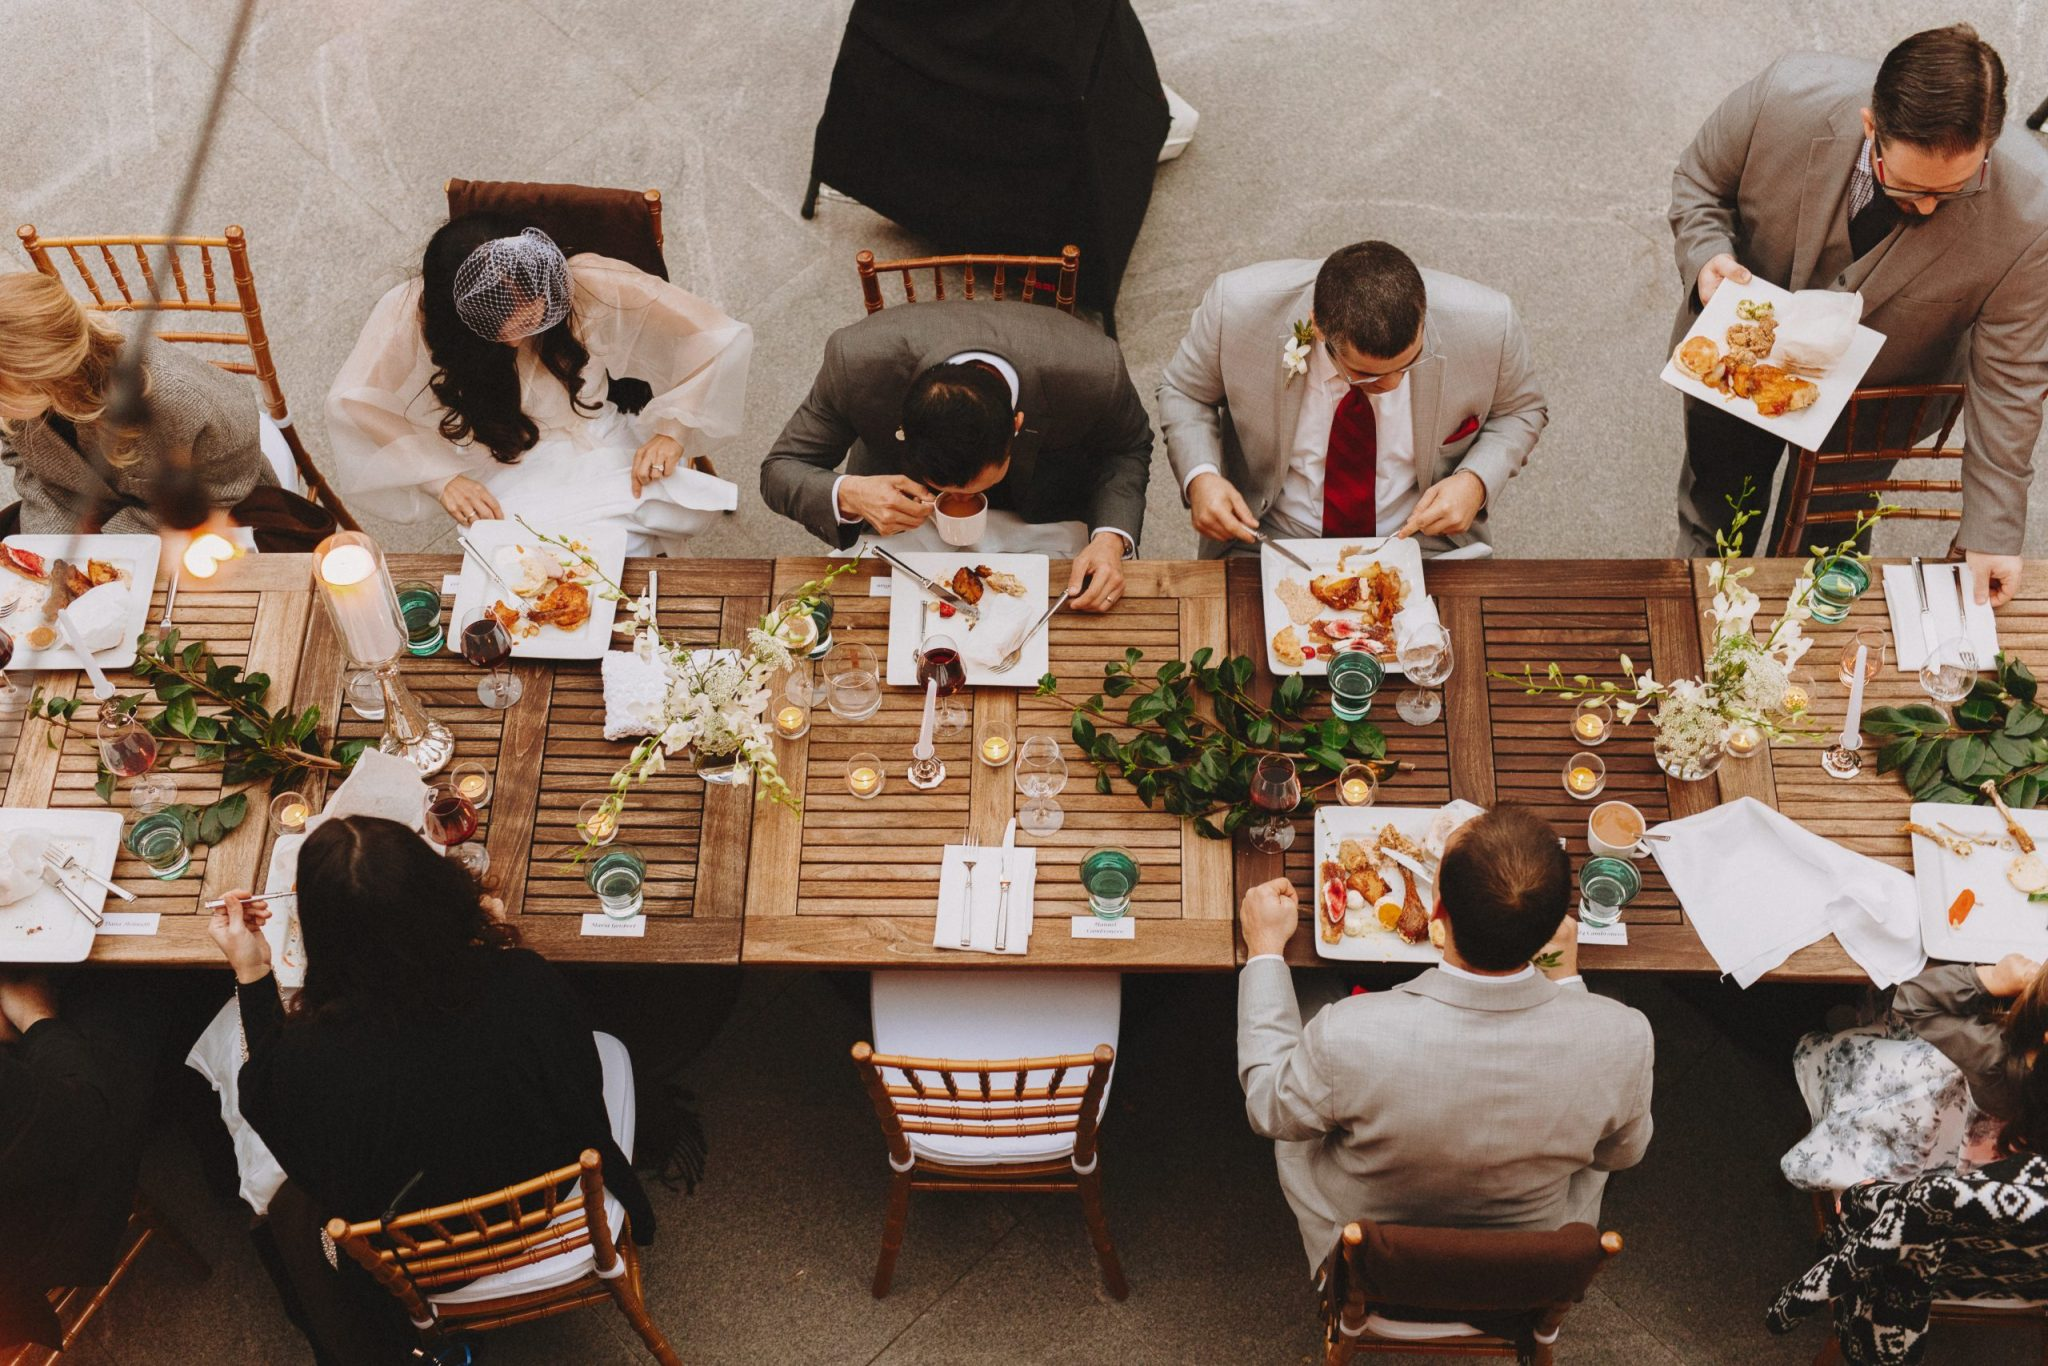 Overview shot of the wedding guests eating at the table